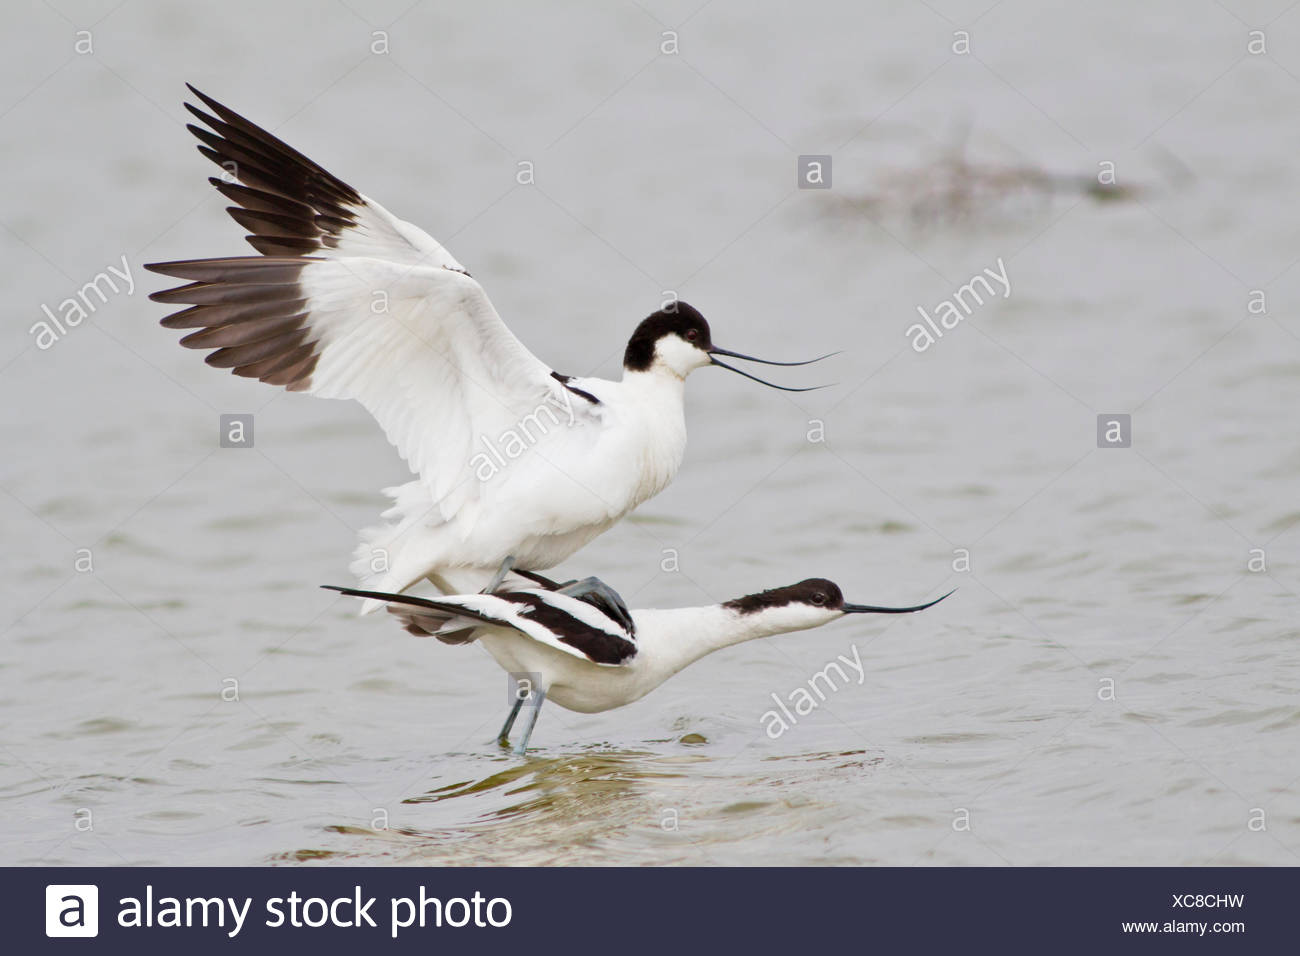 Pairing of two Pied Avocets (Recurvirostra avosetta), Texel, The Netherlands - Stock Image